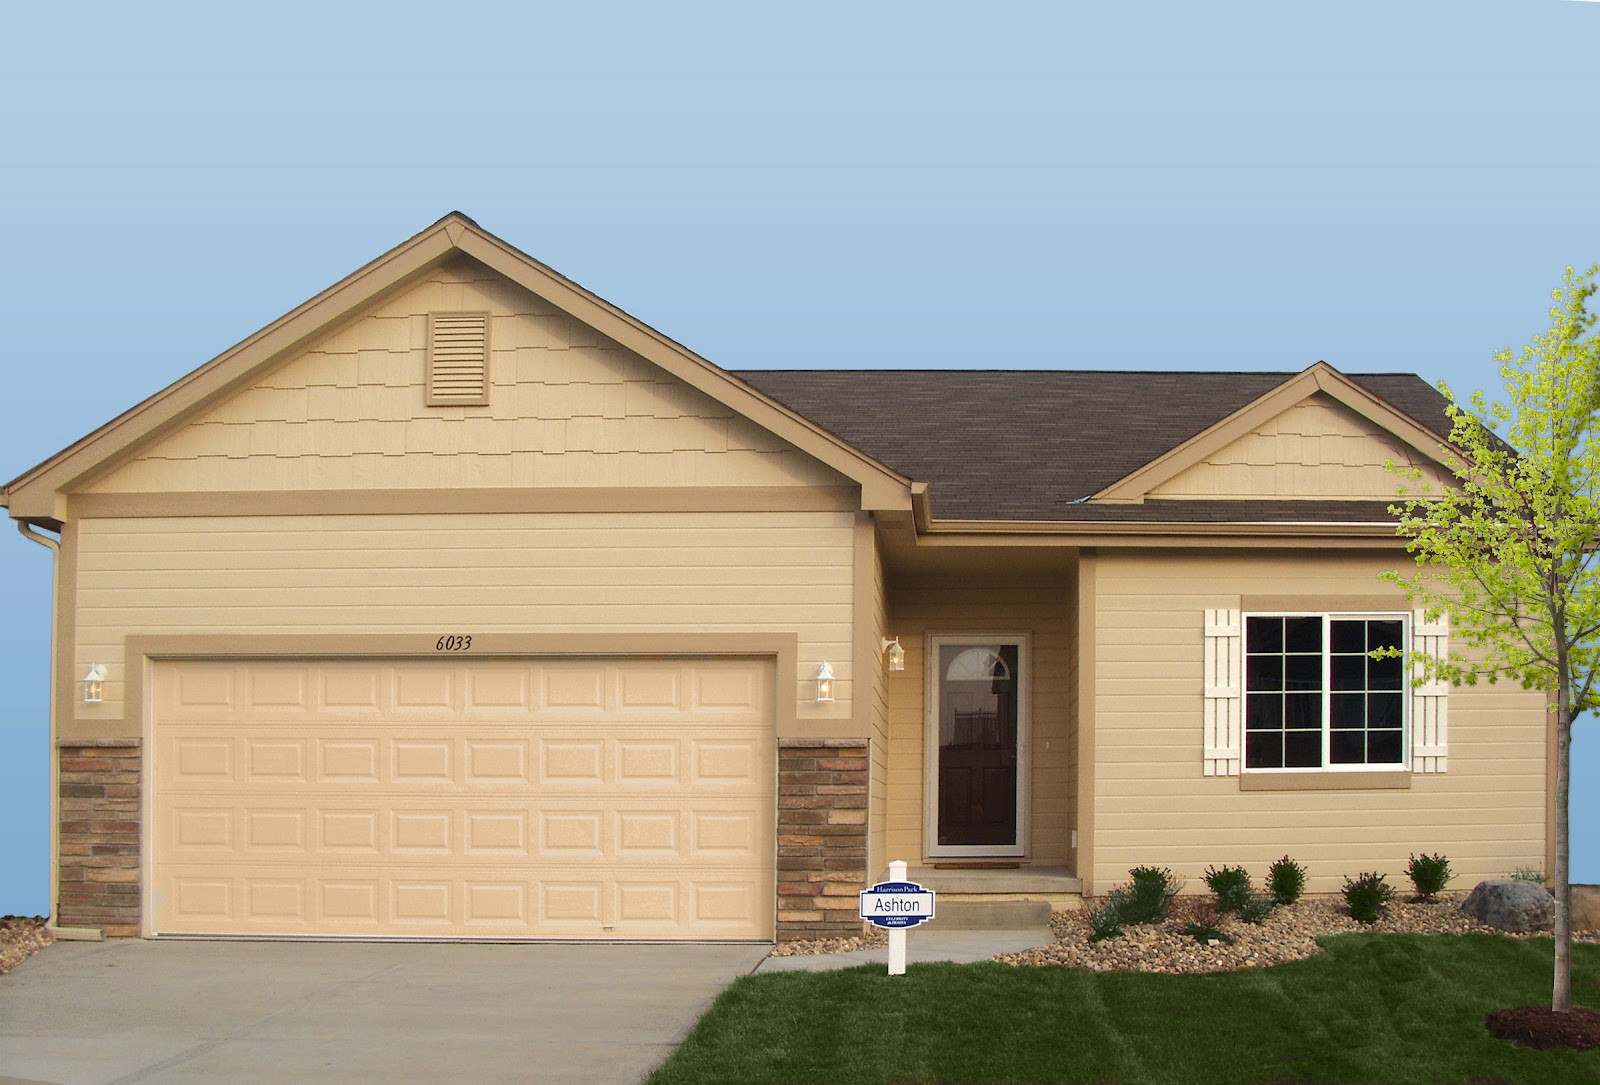 Omaha Homes Celebrity Homes Omaha From 120k 39 S Many